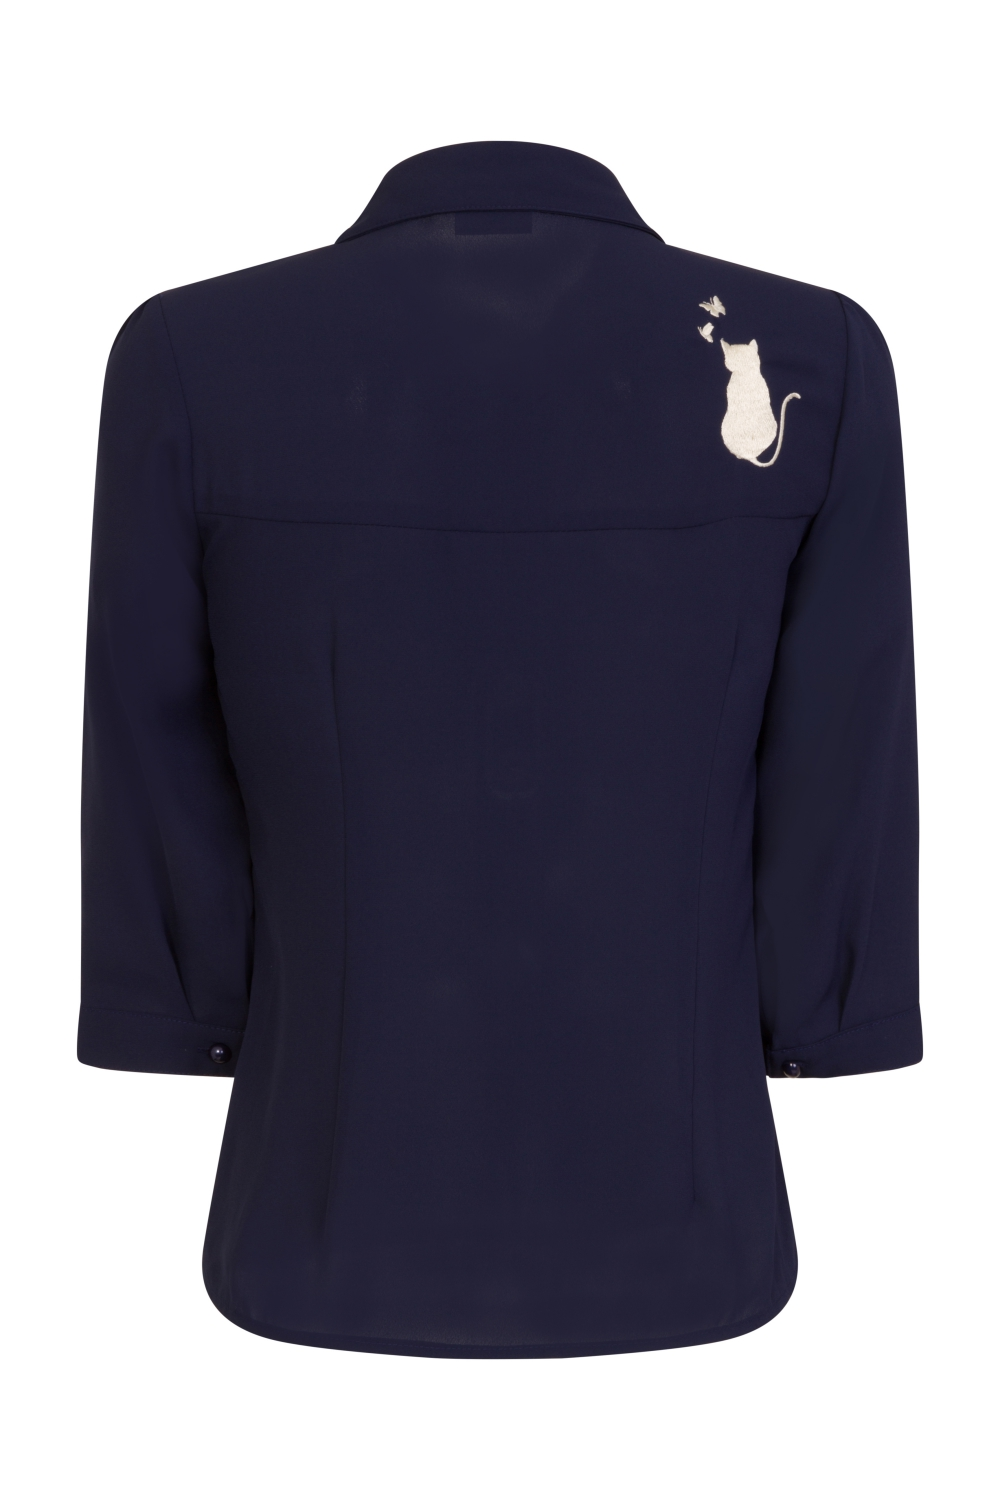 Banned Retro 60s Snowbird Blouse In Night Blue